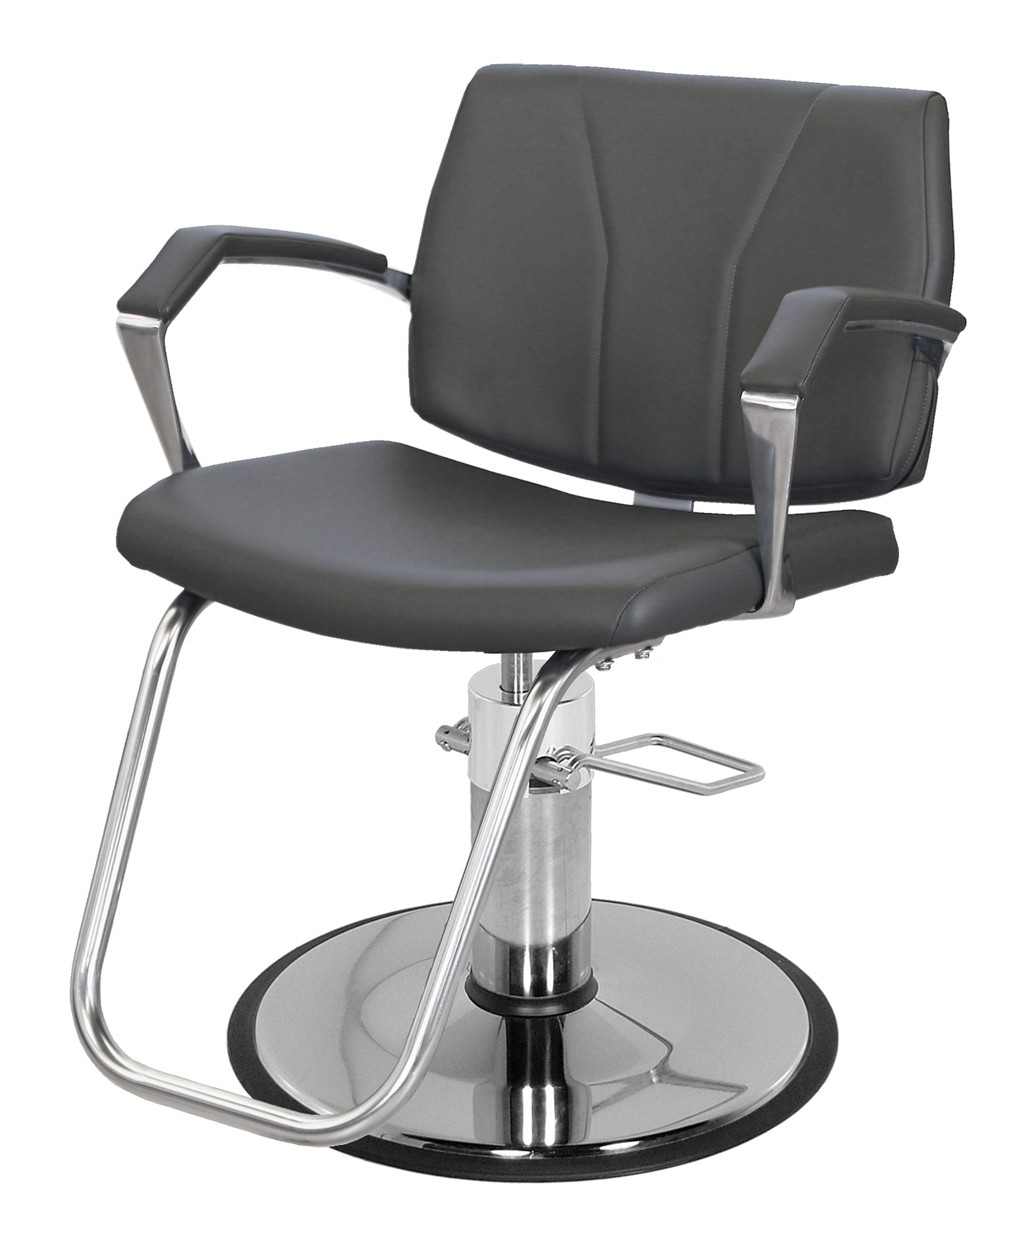 5200 Phenix Styling Chair with Standard Base